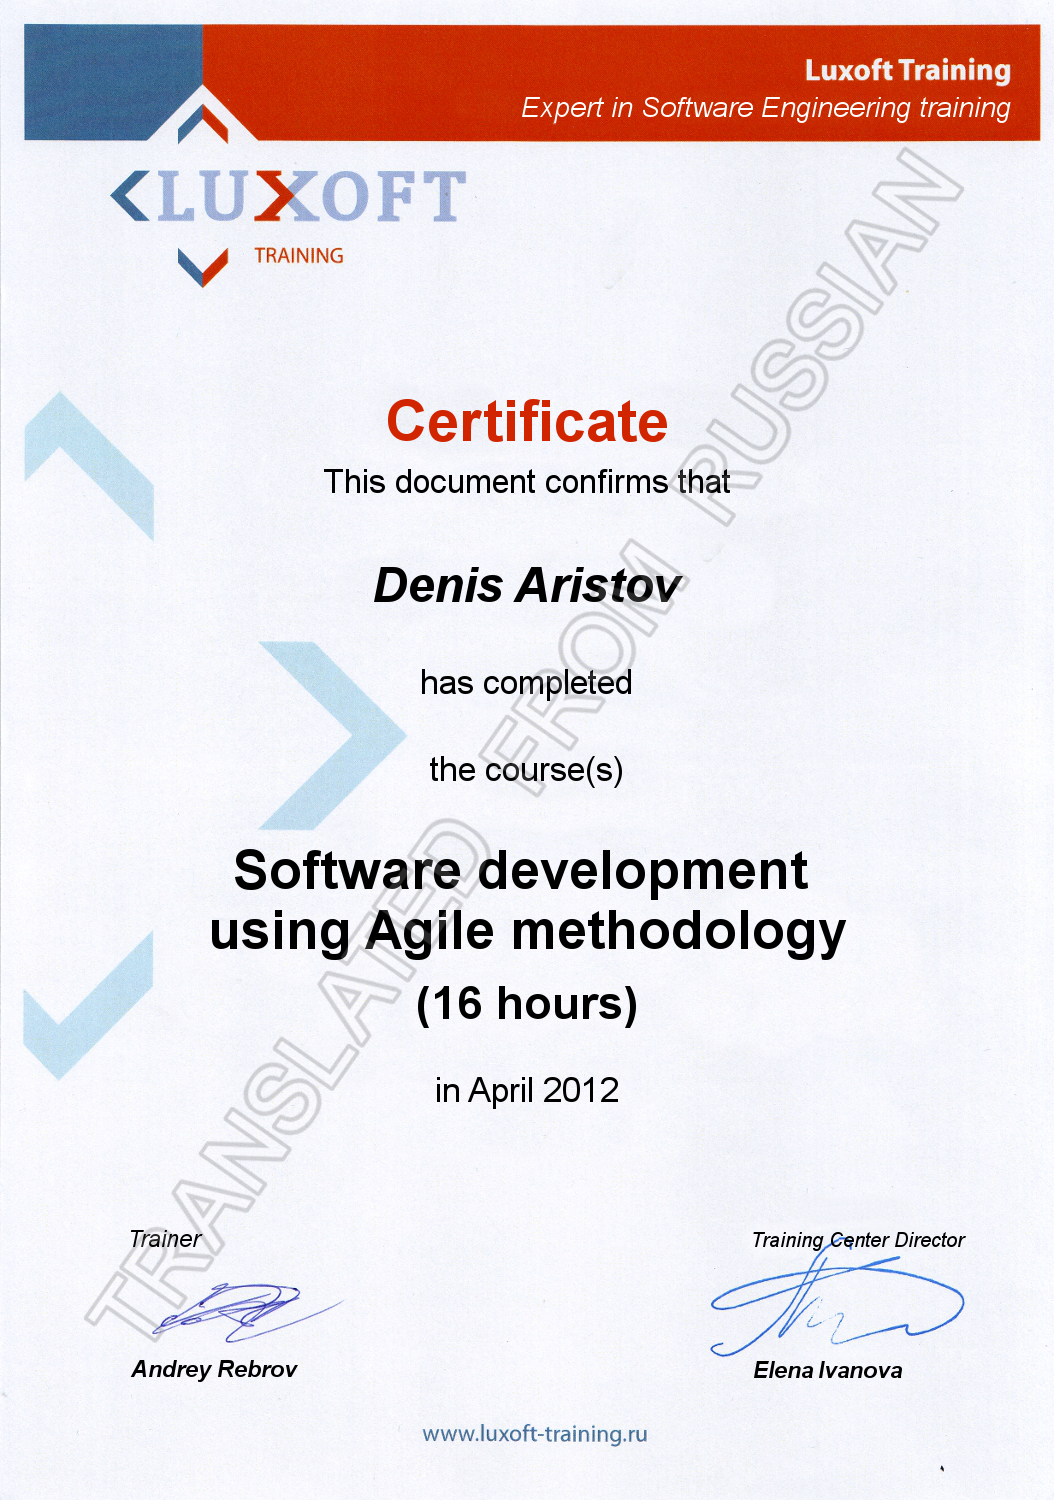 Course 'Software development using Agile methodology'